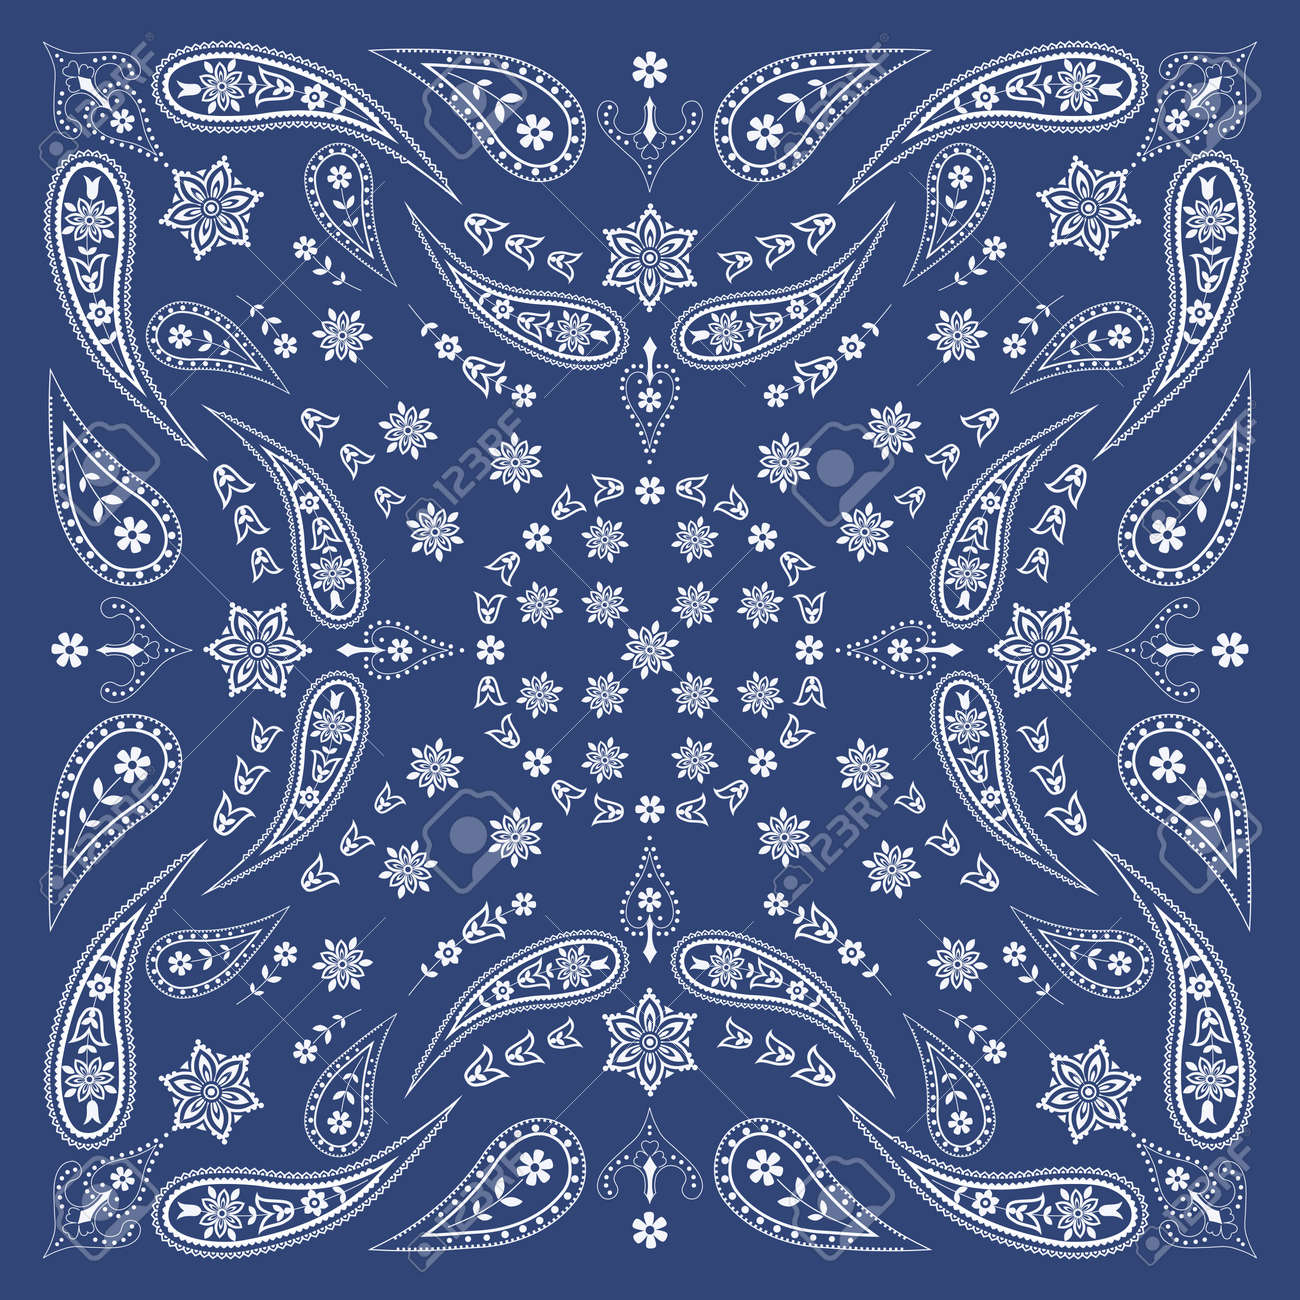 Bandana Scarf with Paisley and Floral Pattern Stock Vector - 24099907